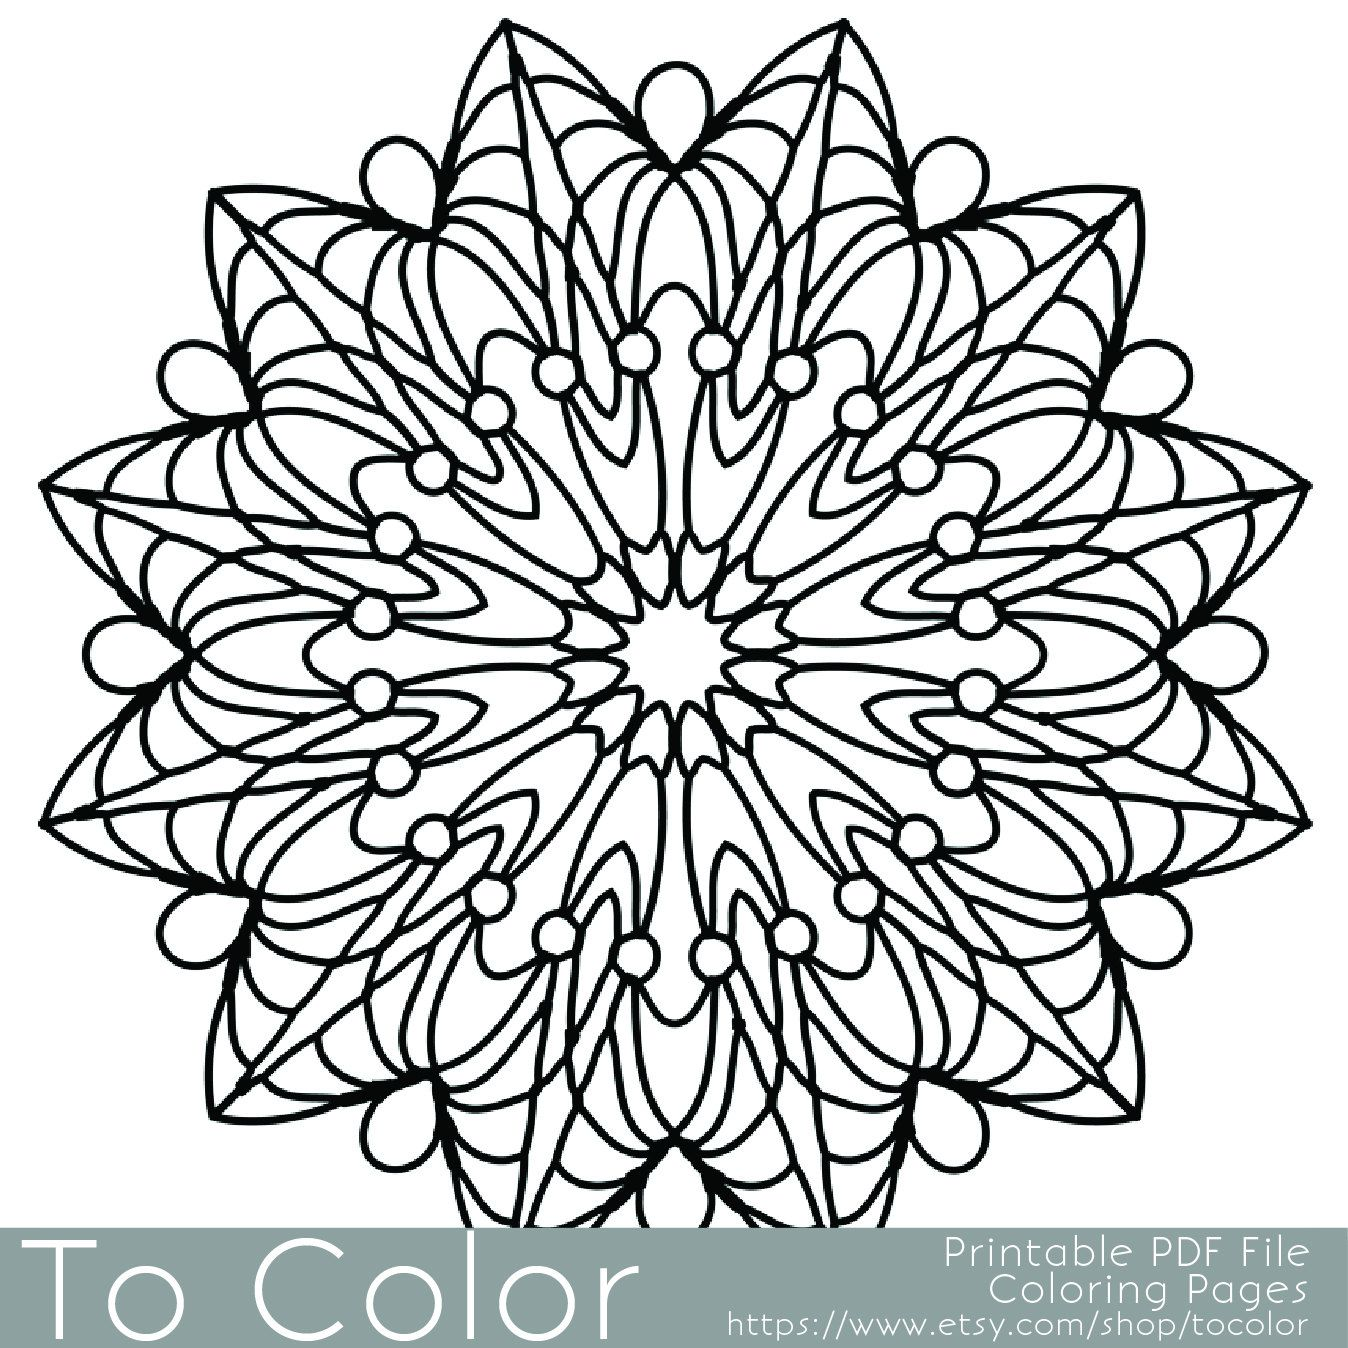 Simple Printable Coloring Pages For Adults Gel Pens Mandala Pattern Pdf Jpg Instant Down Easy Coloring Pages Mandala Coloring Pages Mandala Coloring Books